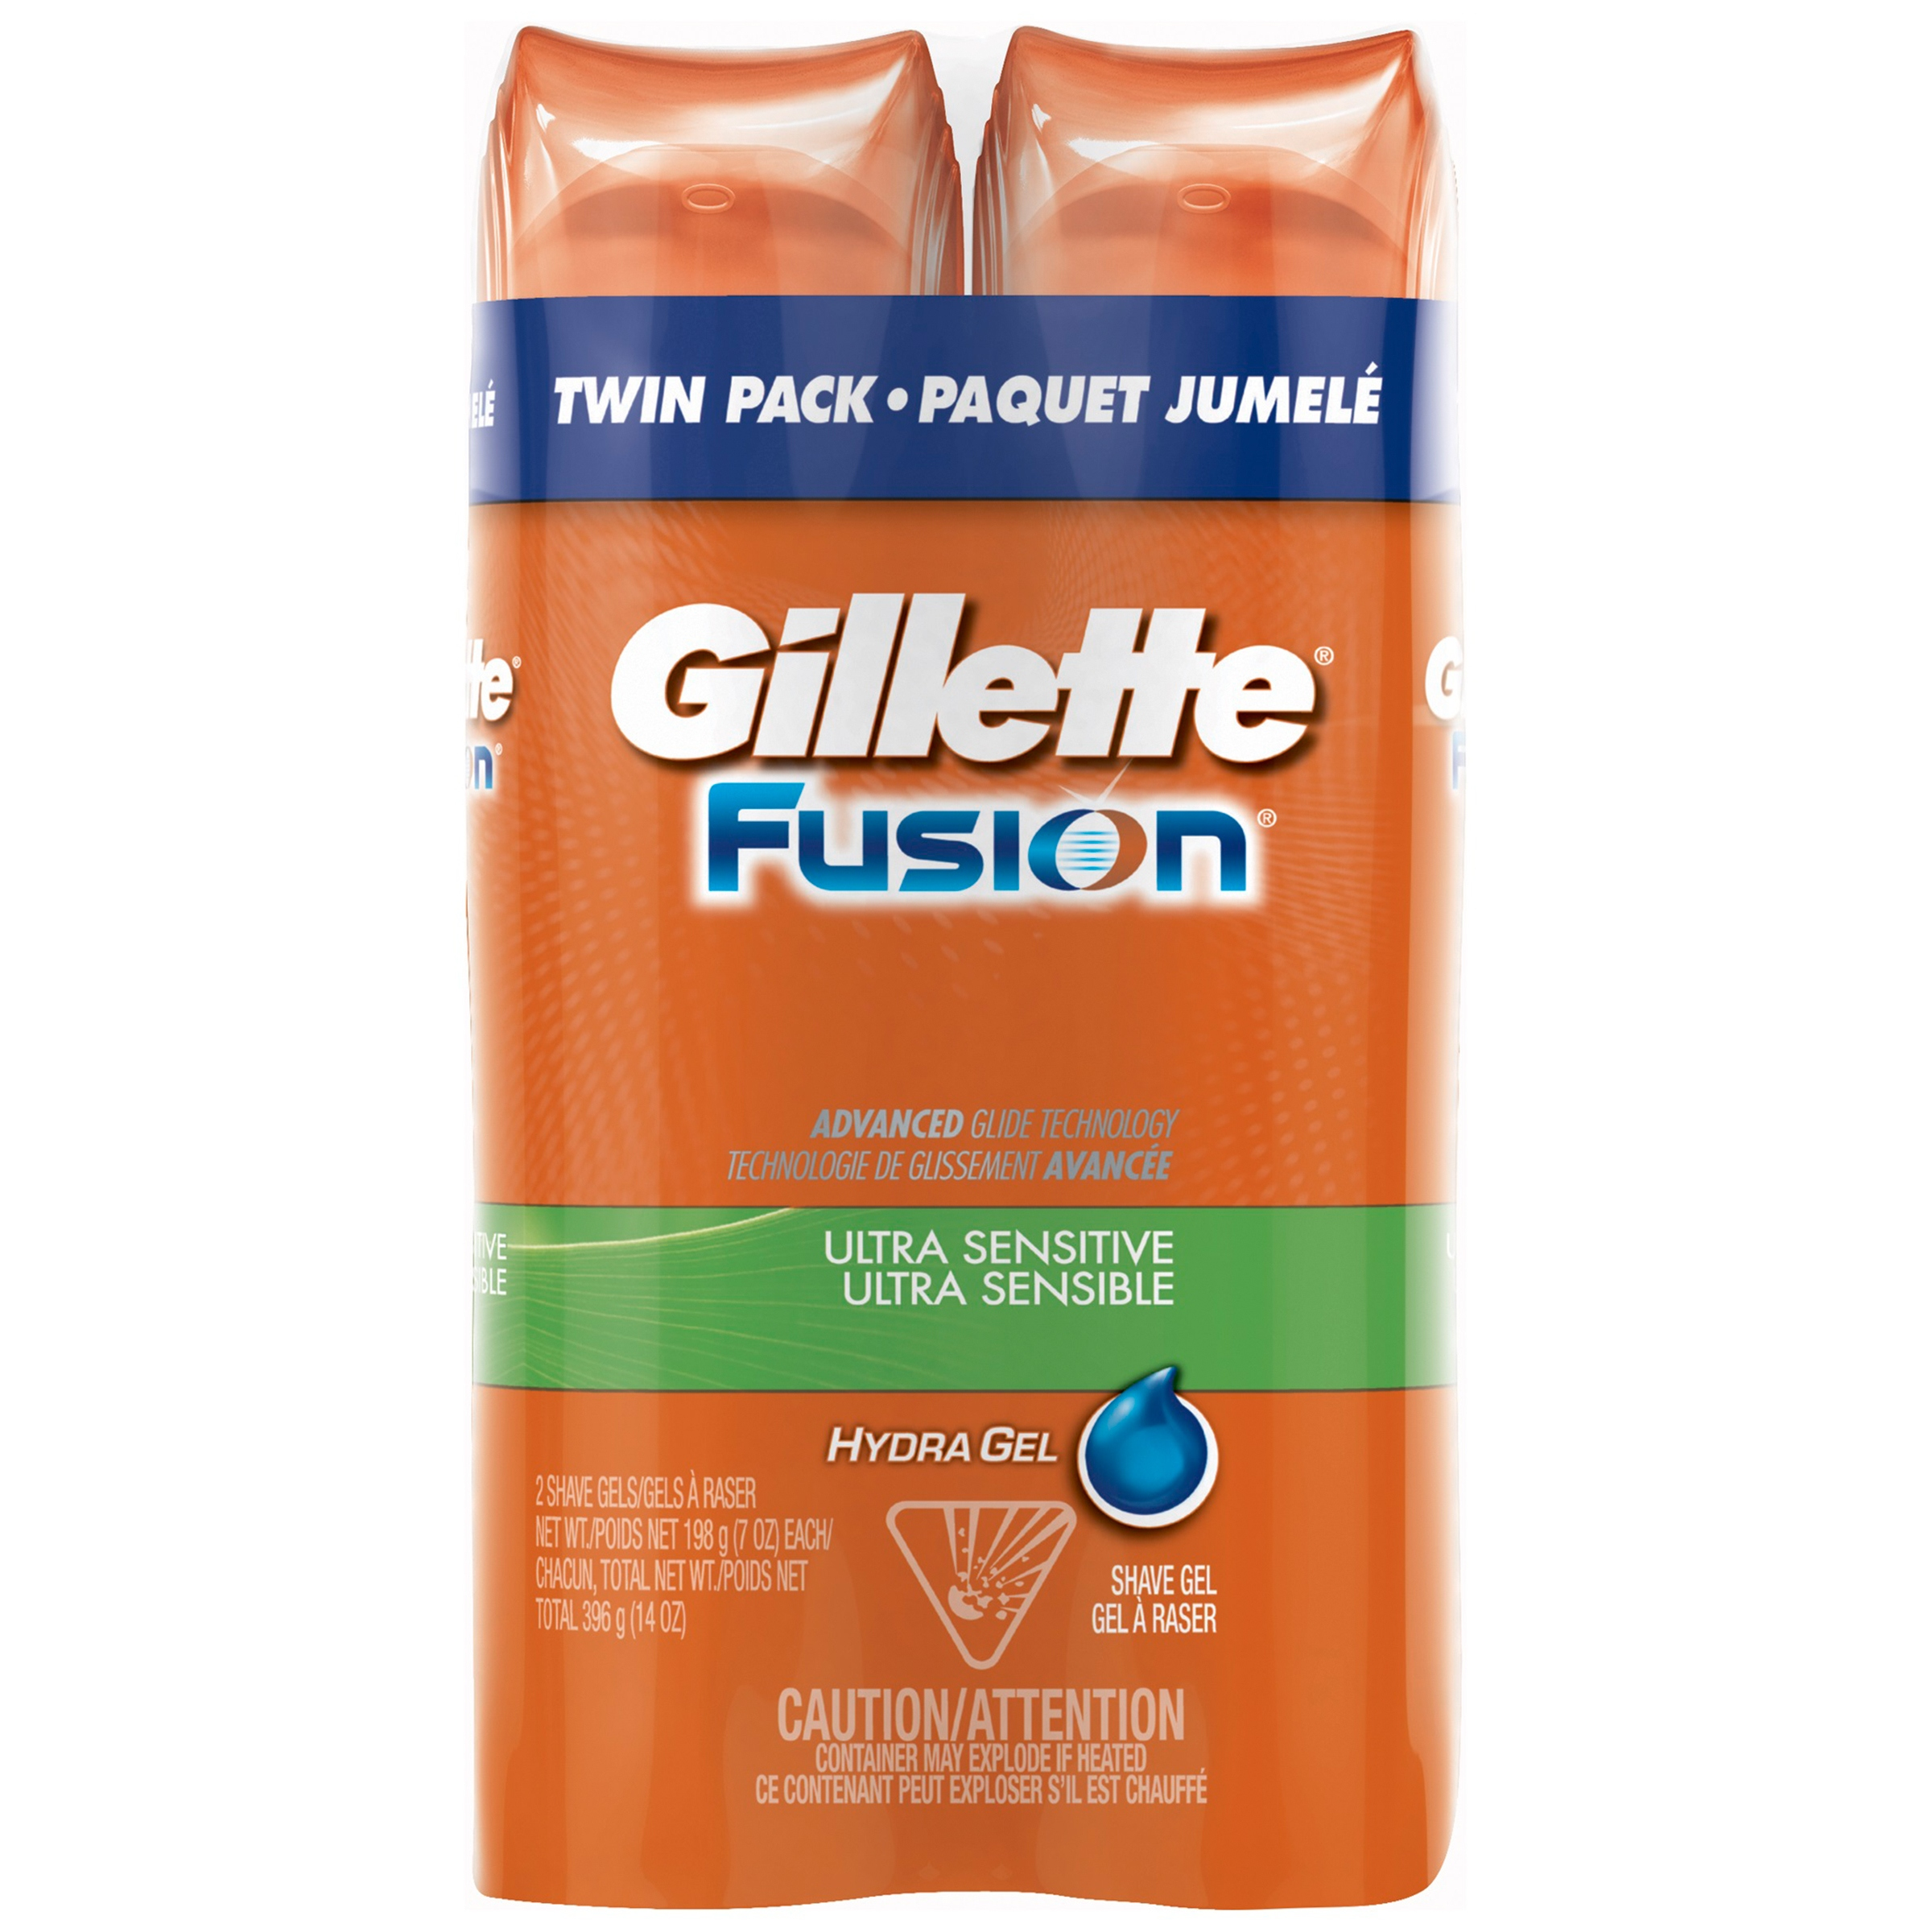 Gillette Fusion Ultra Sensitive Hydra Gel Men's Shave Gel Twin Pack, 14oz